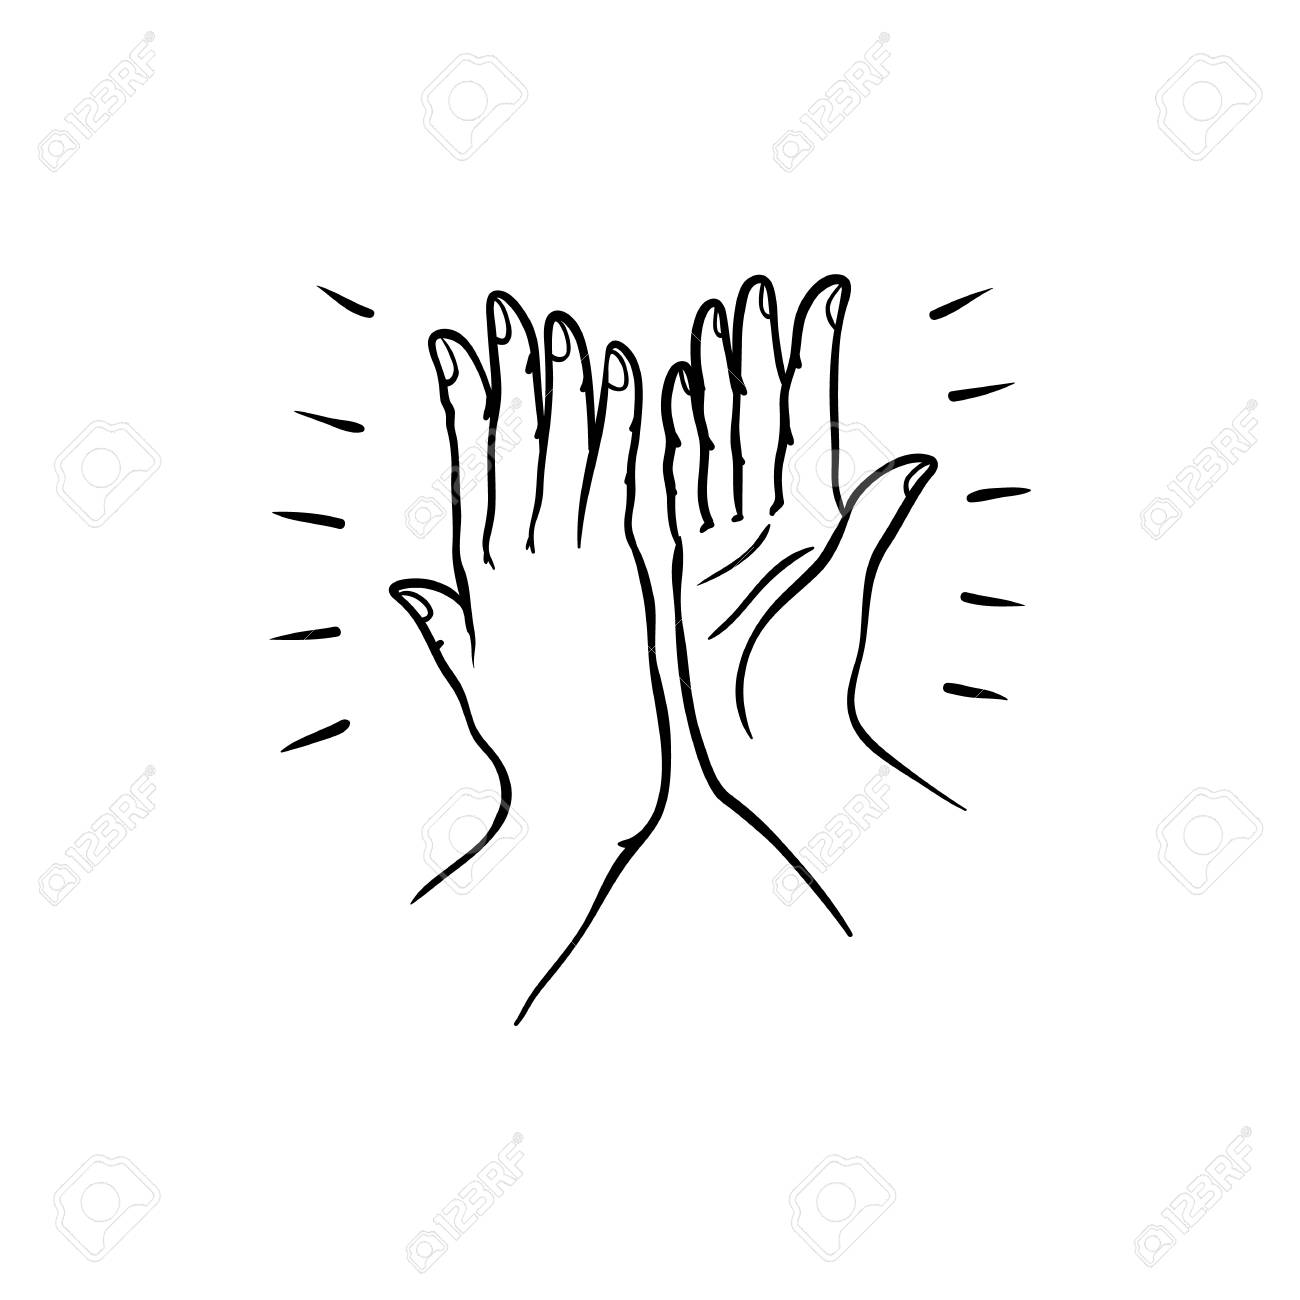 Hand gesture of two people giving each other high five in sketch style isolated on white background. Hand drawn black line vector illustration of hands palms joining together. - 102124591